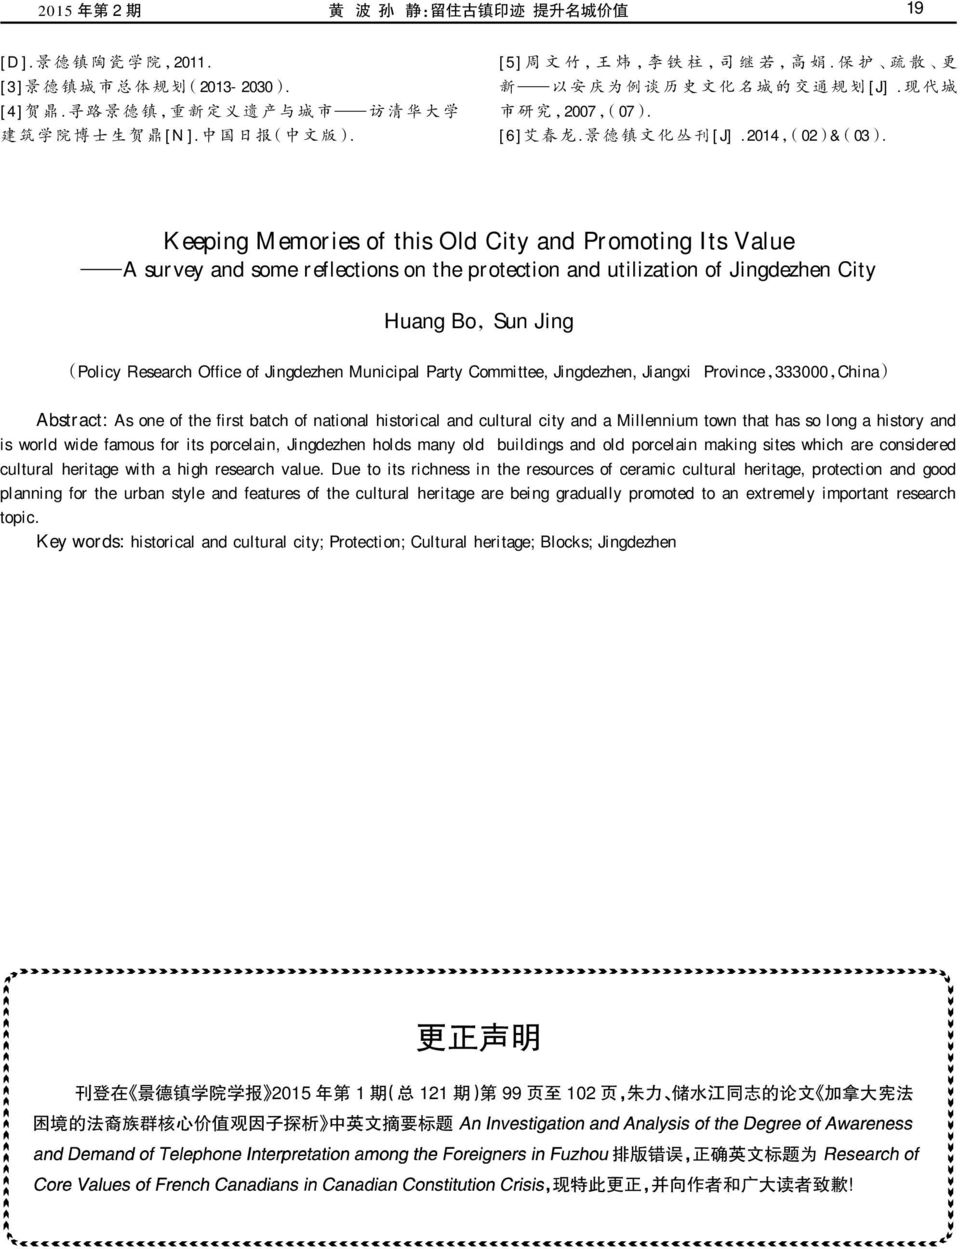 Keeping Memories of this Old City and Promoting Its Value A survey and some reflections on the protection and utilization of Jingdezhen City Huang Bo,Sun Jing (Policy Research Office of Jingdezhen